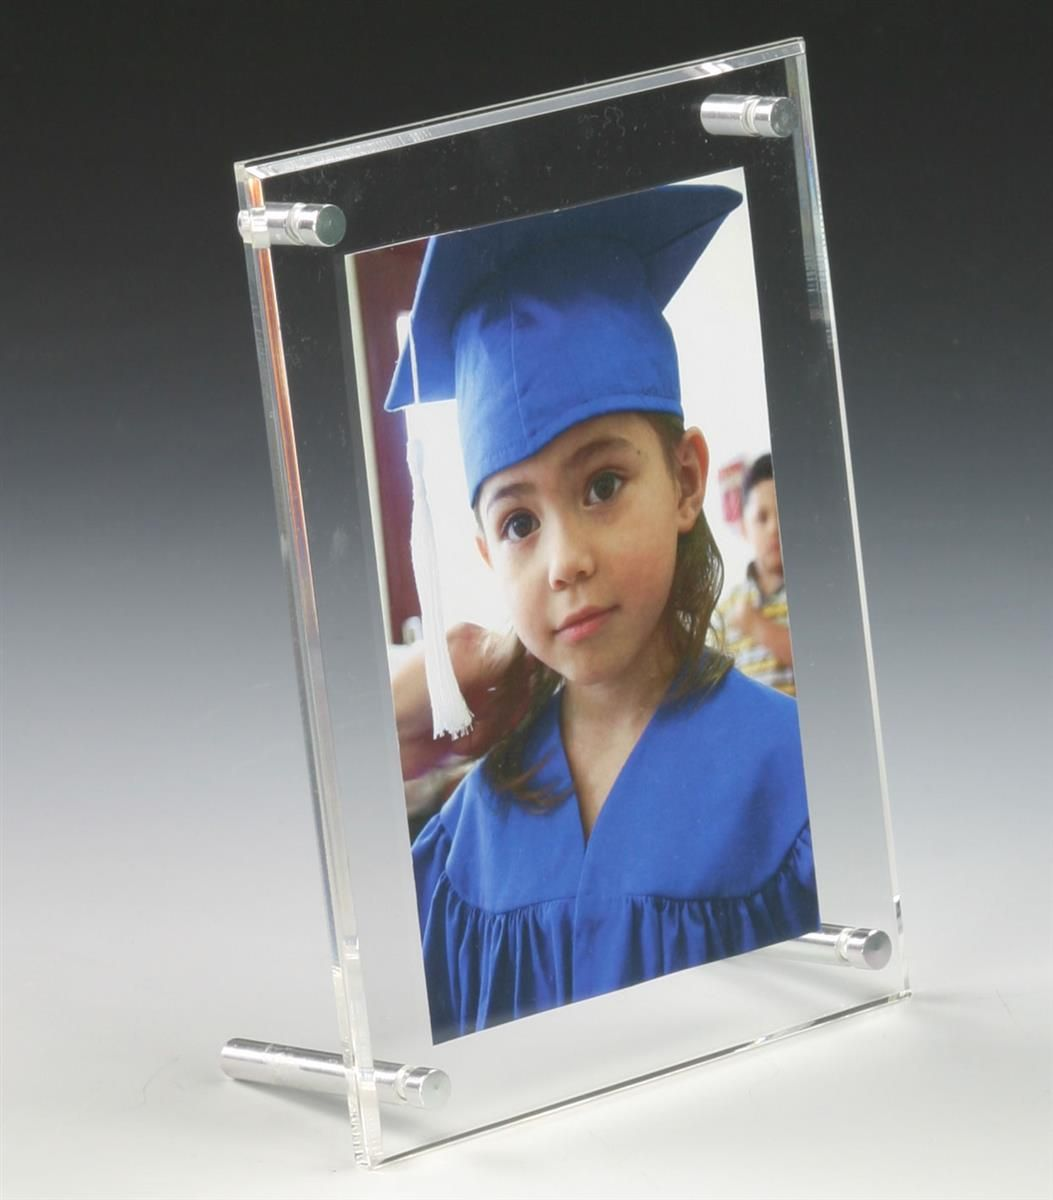 4 X 6 Acrylic Sign Holder With Standoff Hardware Slant Back Clear Acrylic Sign Double Sided Picture Frame Acrylic Picture Frames